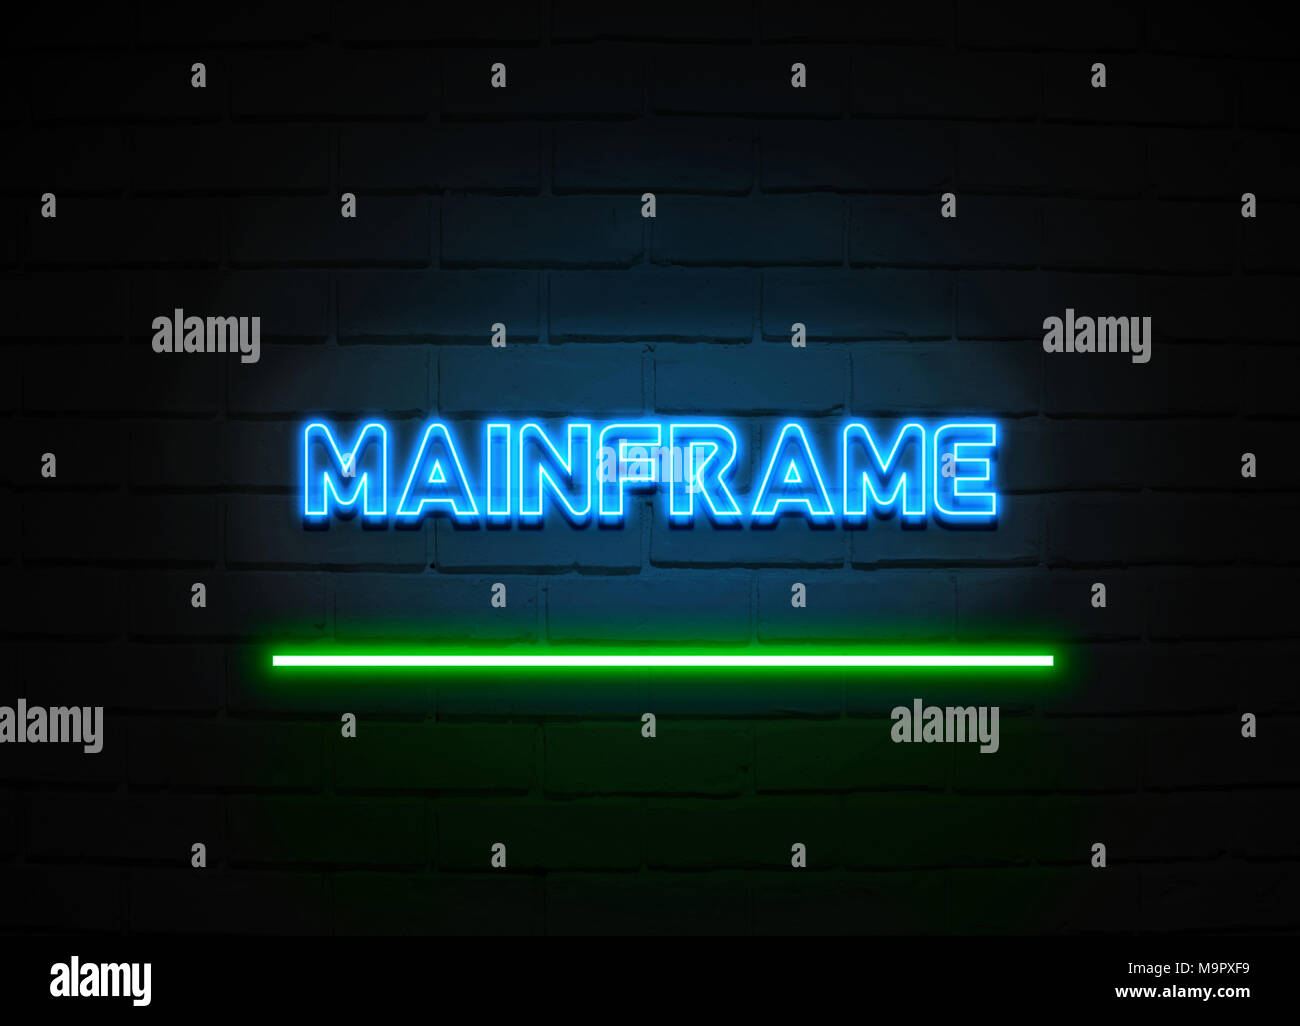 Mainframe neon sign - Glowing Neon Sign on brickwall wall - 3D rendered royalty free stock illustration. - Stock Image